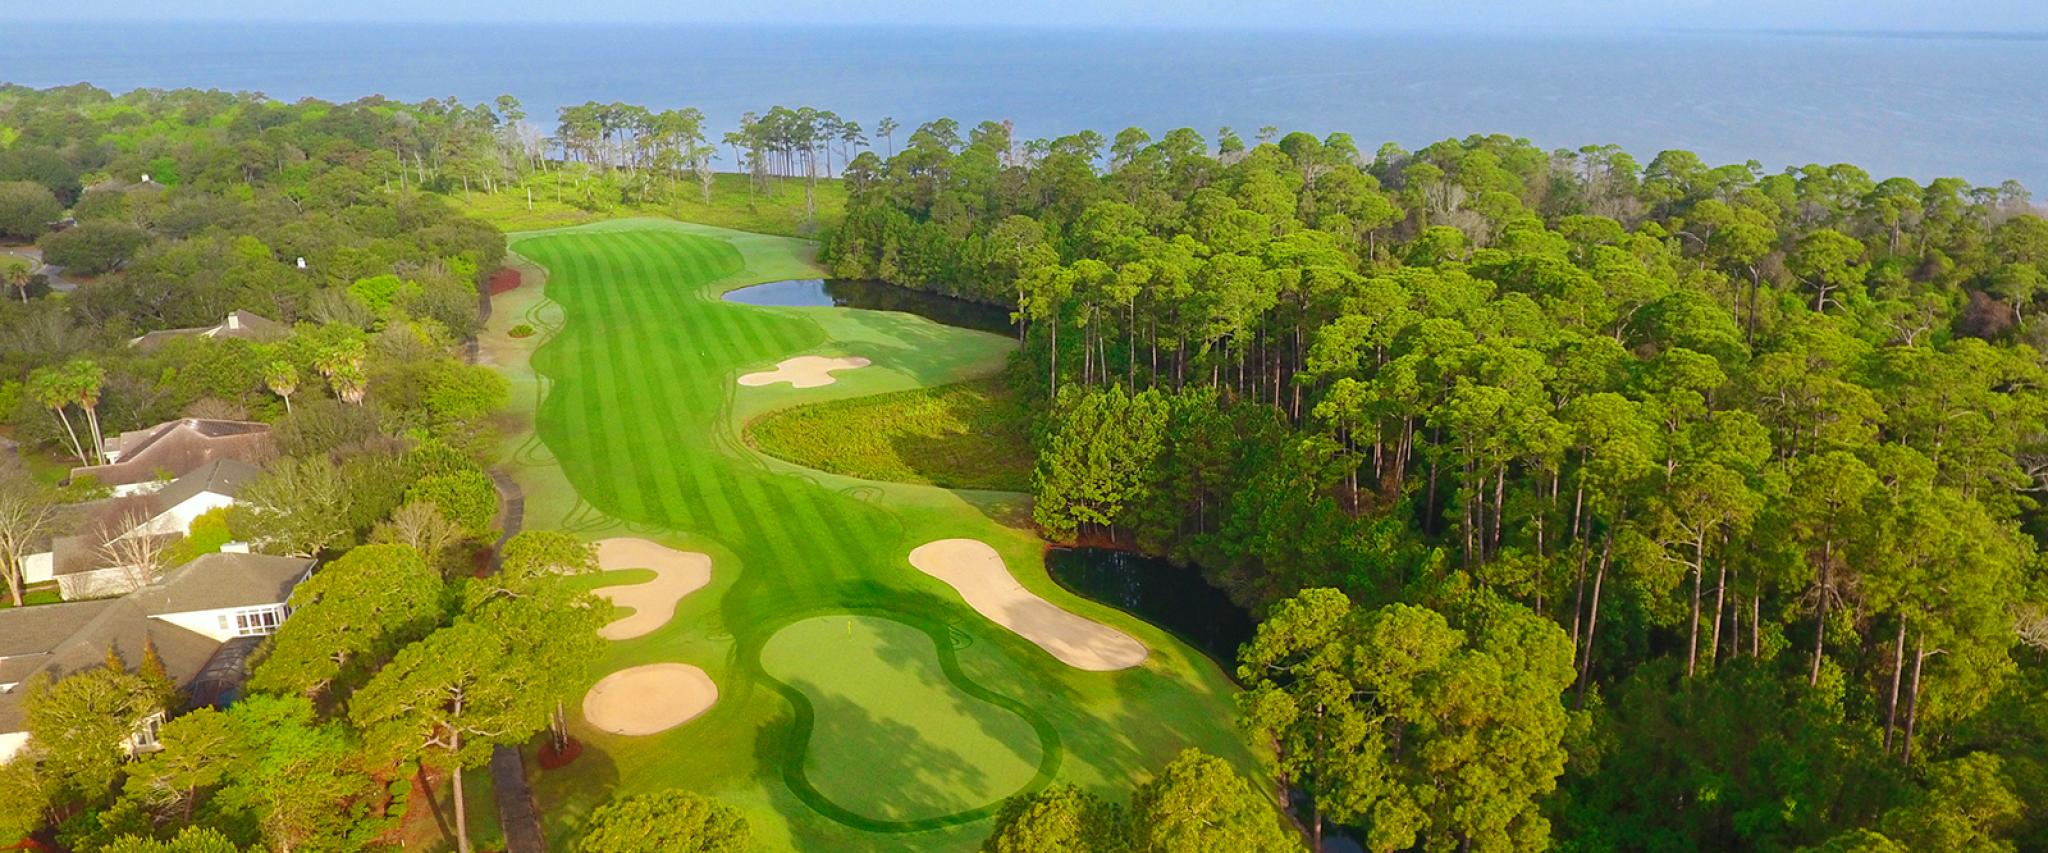 Gulf Shores Golf Course